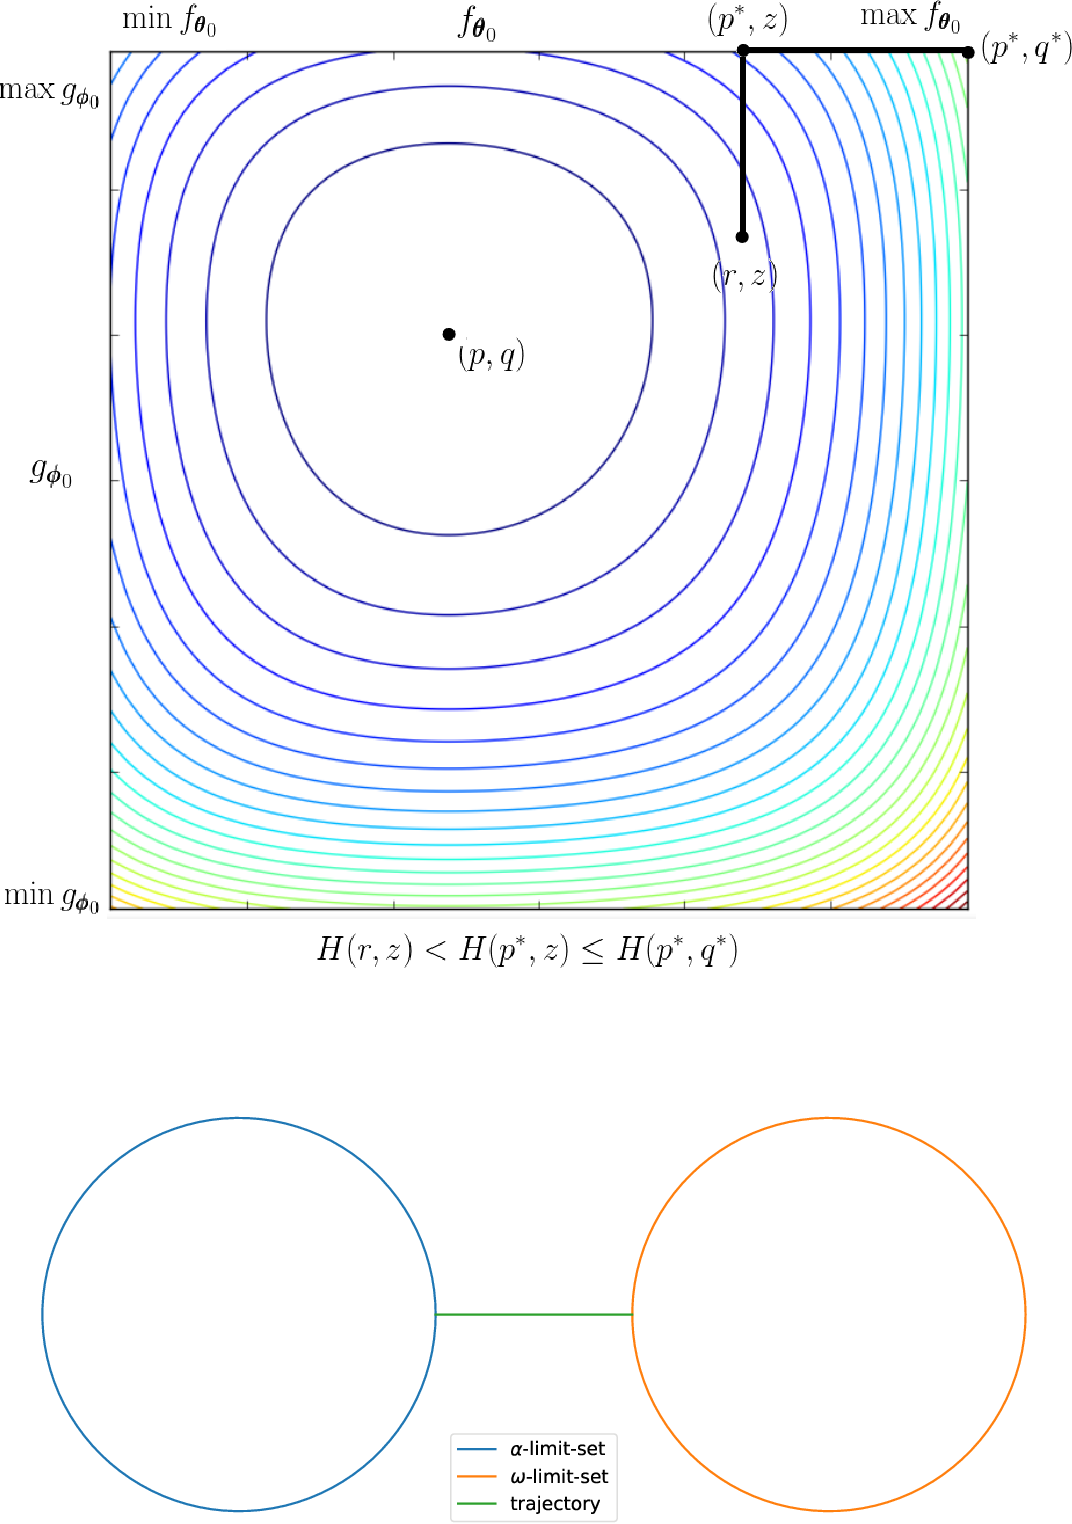 Figure 2 for Poincaré Recurrence, Cycles and Spurious Equilibria in Gradient-Descent-Ascent for Non-Convex Non-Concave Zero-Sum Games